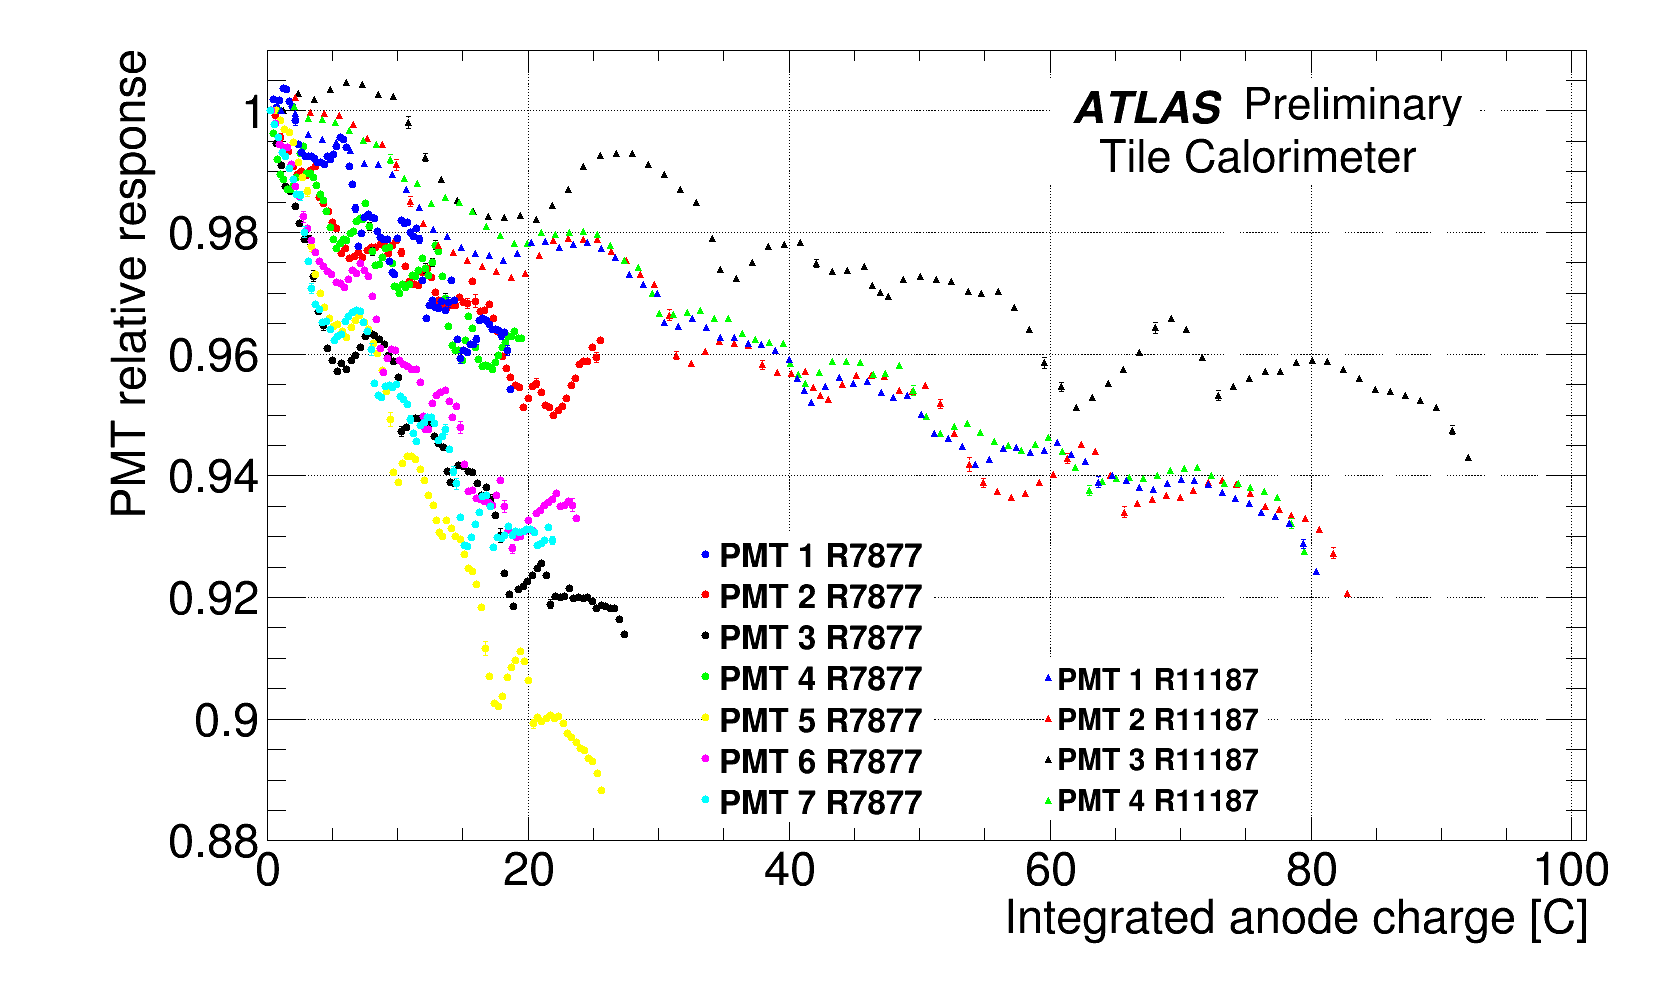 PMT_deviations_VS_integrated_charge_Preliminary.png